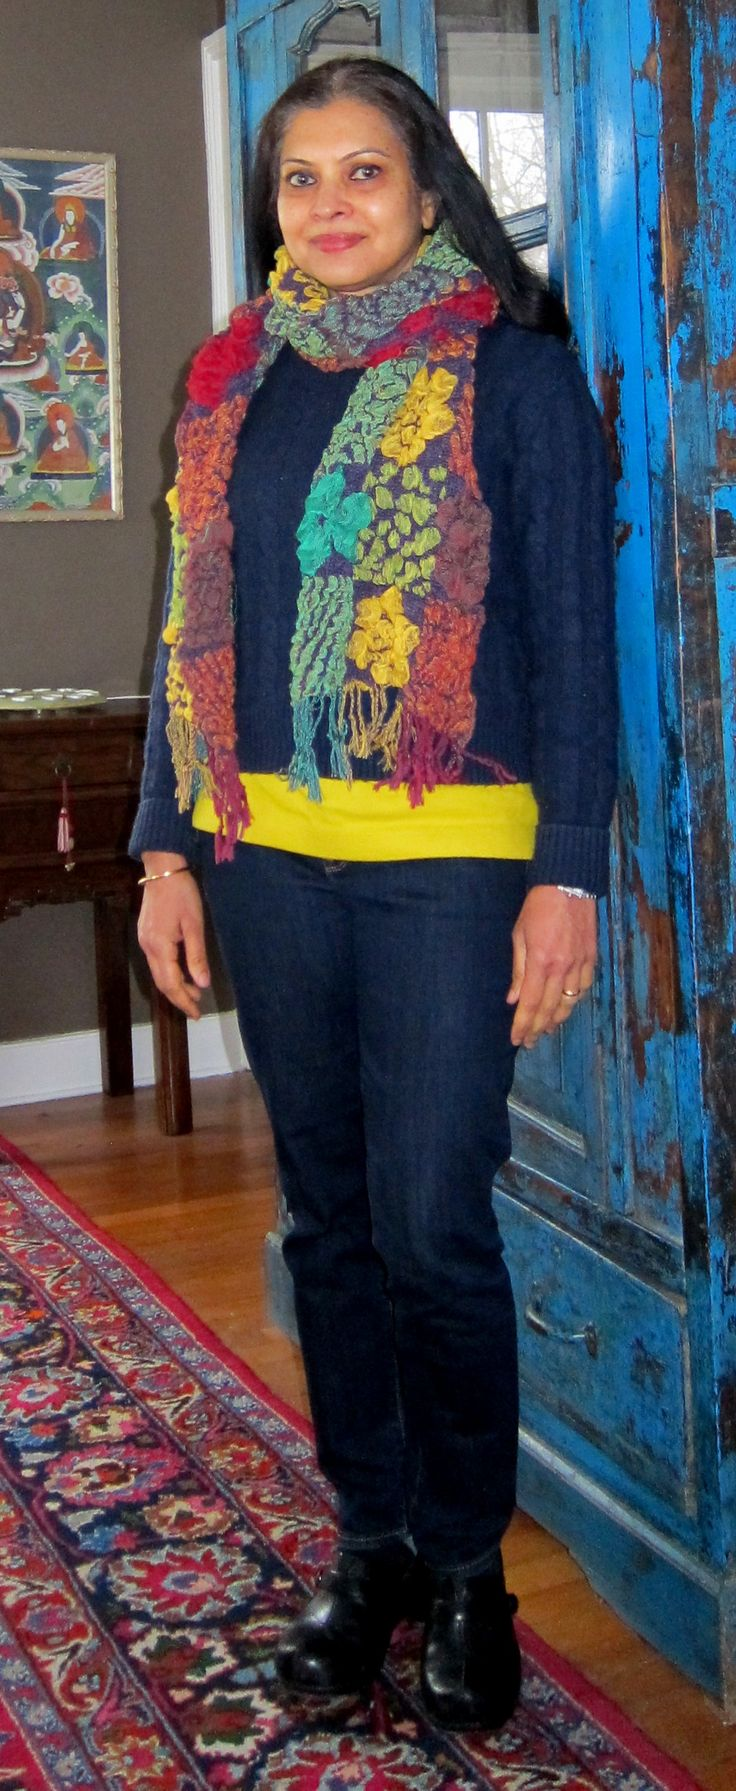 Budget style: Mango wool blend sweater, Uniqlo fleece top, Gap jeans, Dansko clogs and knit scarf from India - 2018